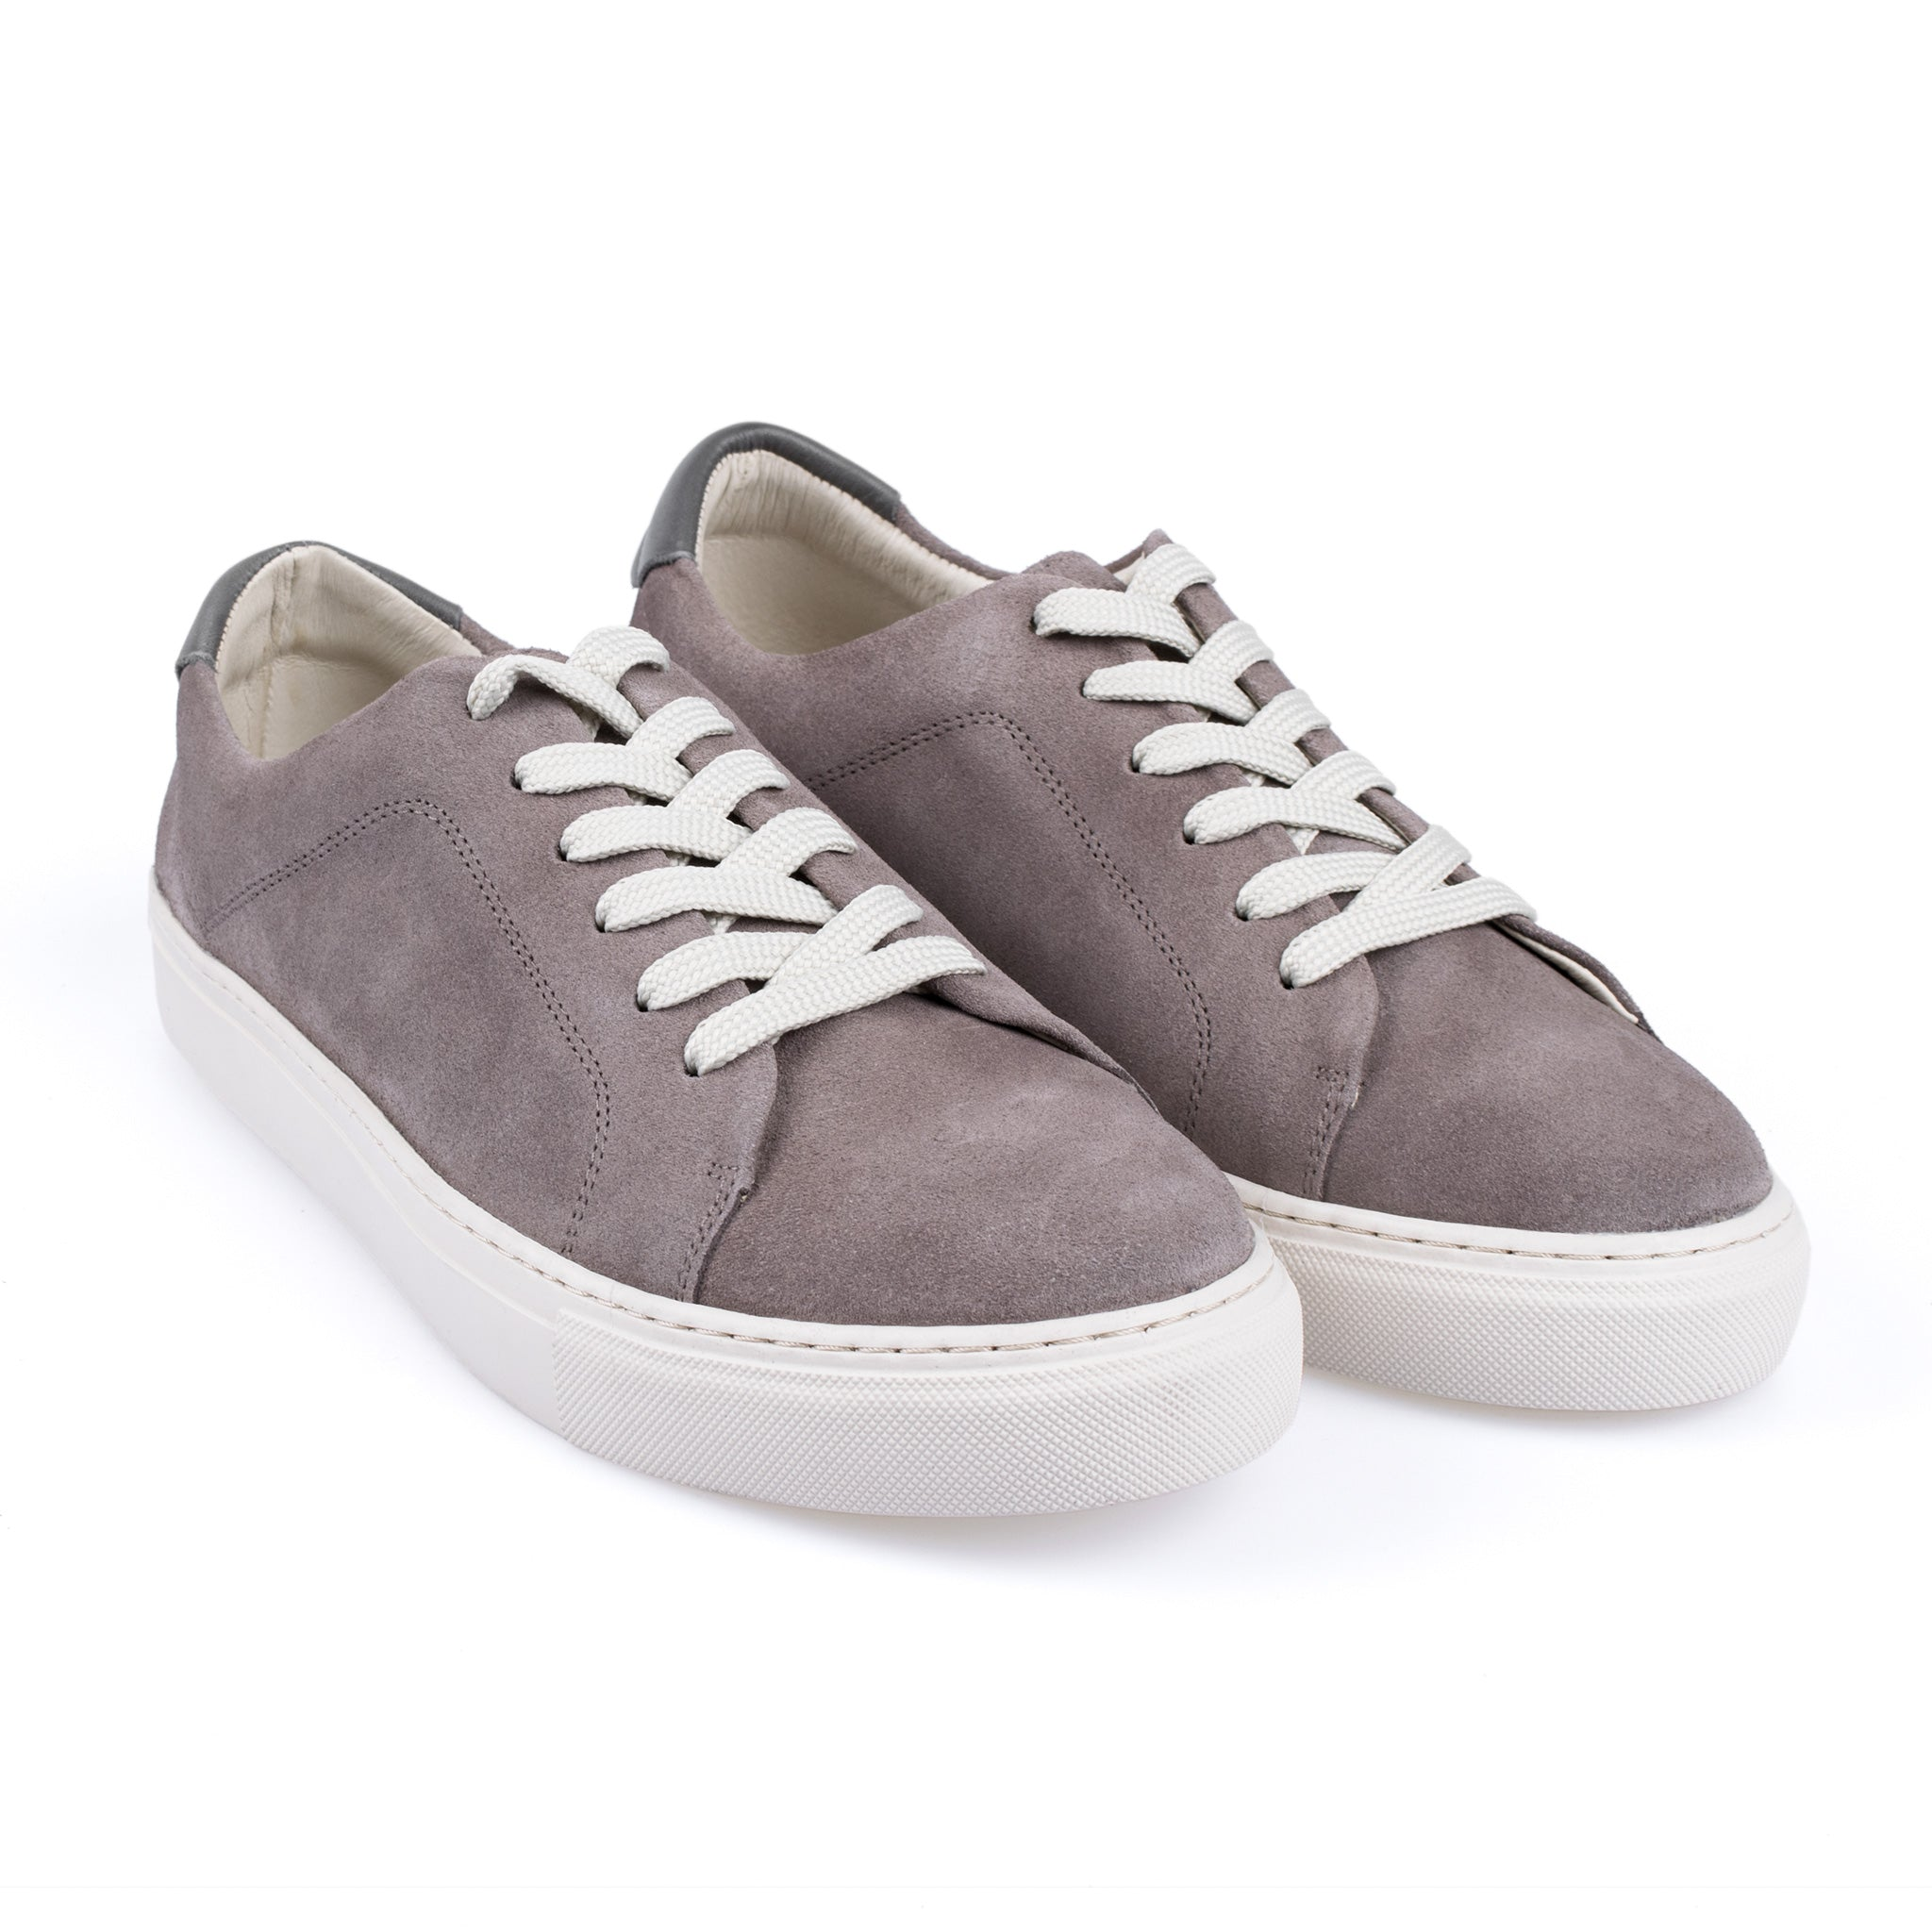 Garment Project New Classic Lace Veloursleder Sneaker grau